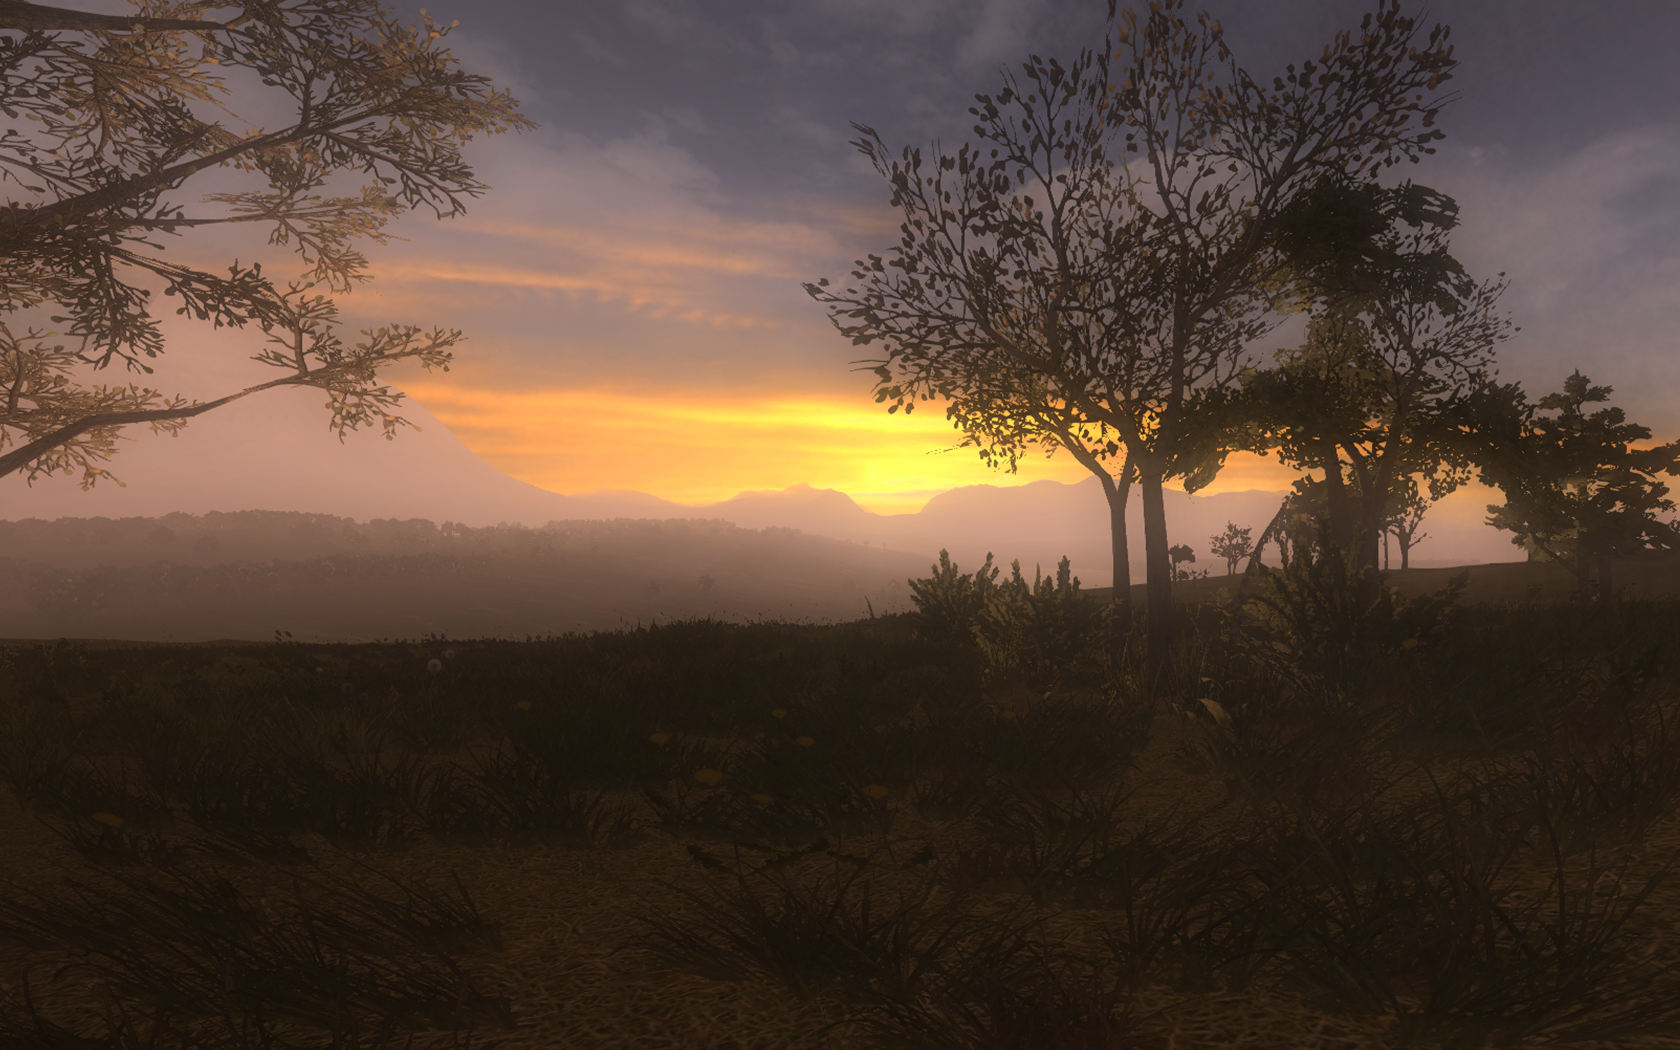 Life is Feudal - nice sunrise and environment